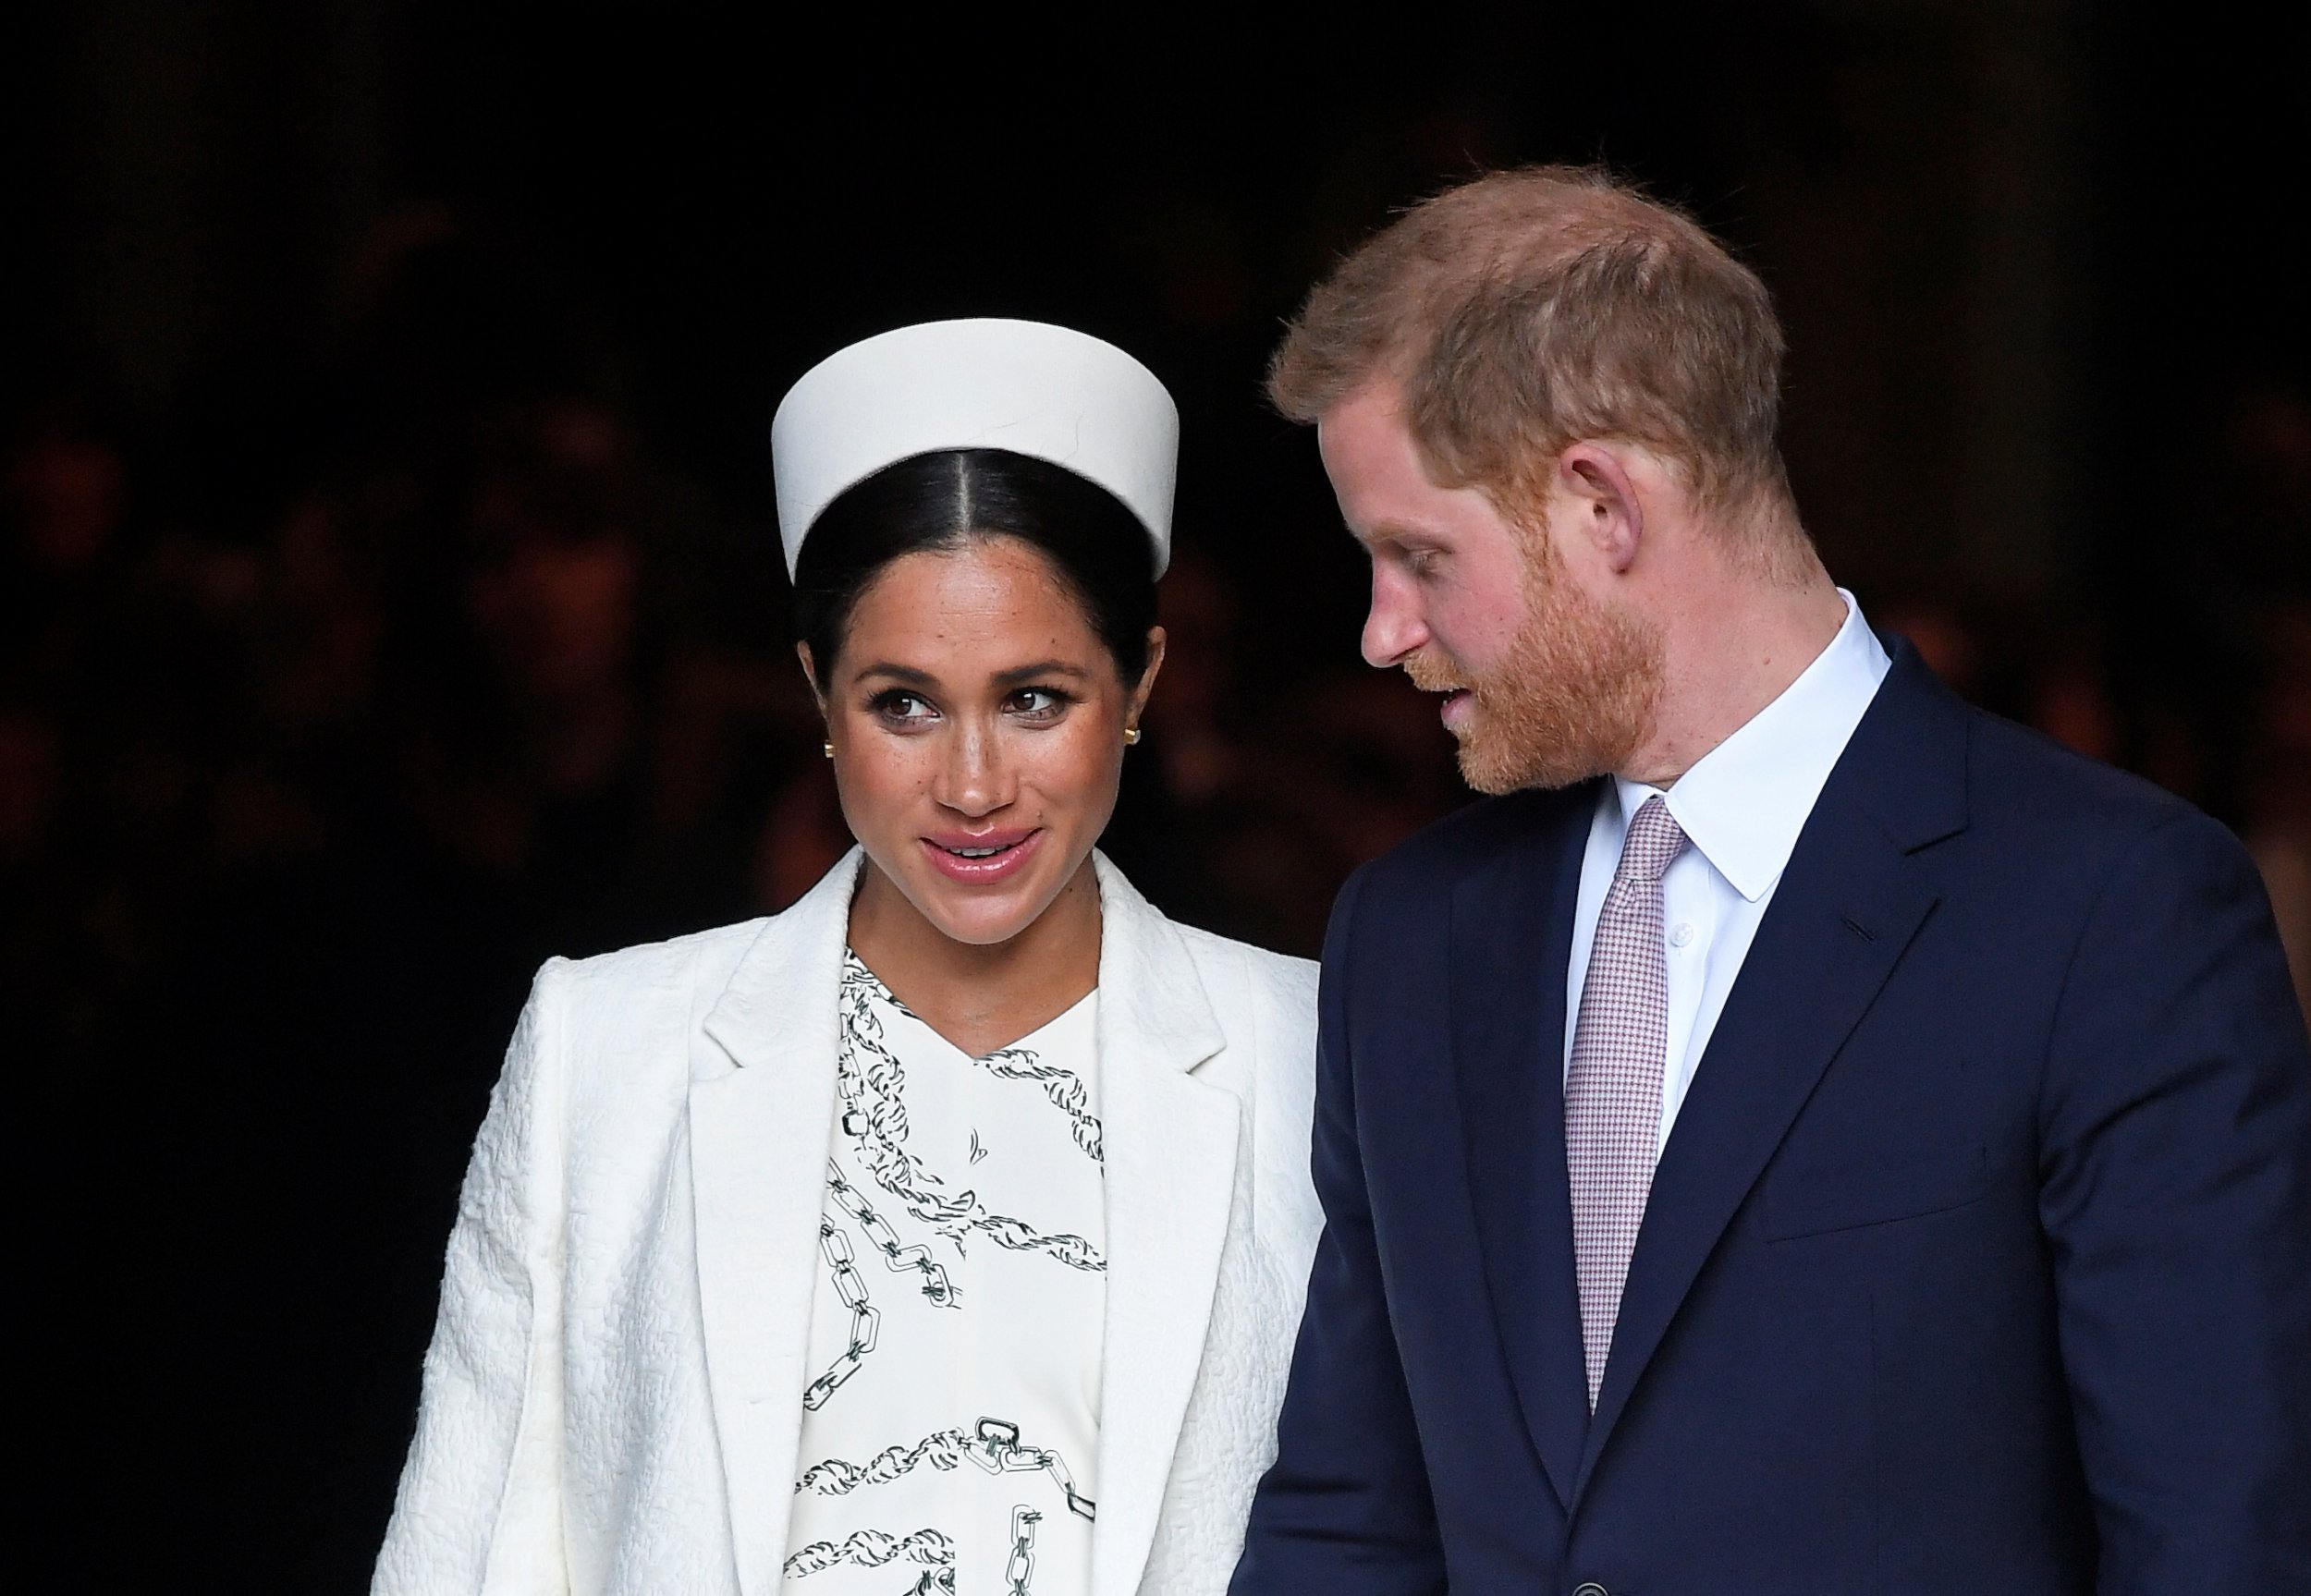 Meghan Markle and Prince Harry delay move to Frogmore Cottage